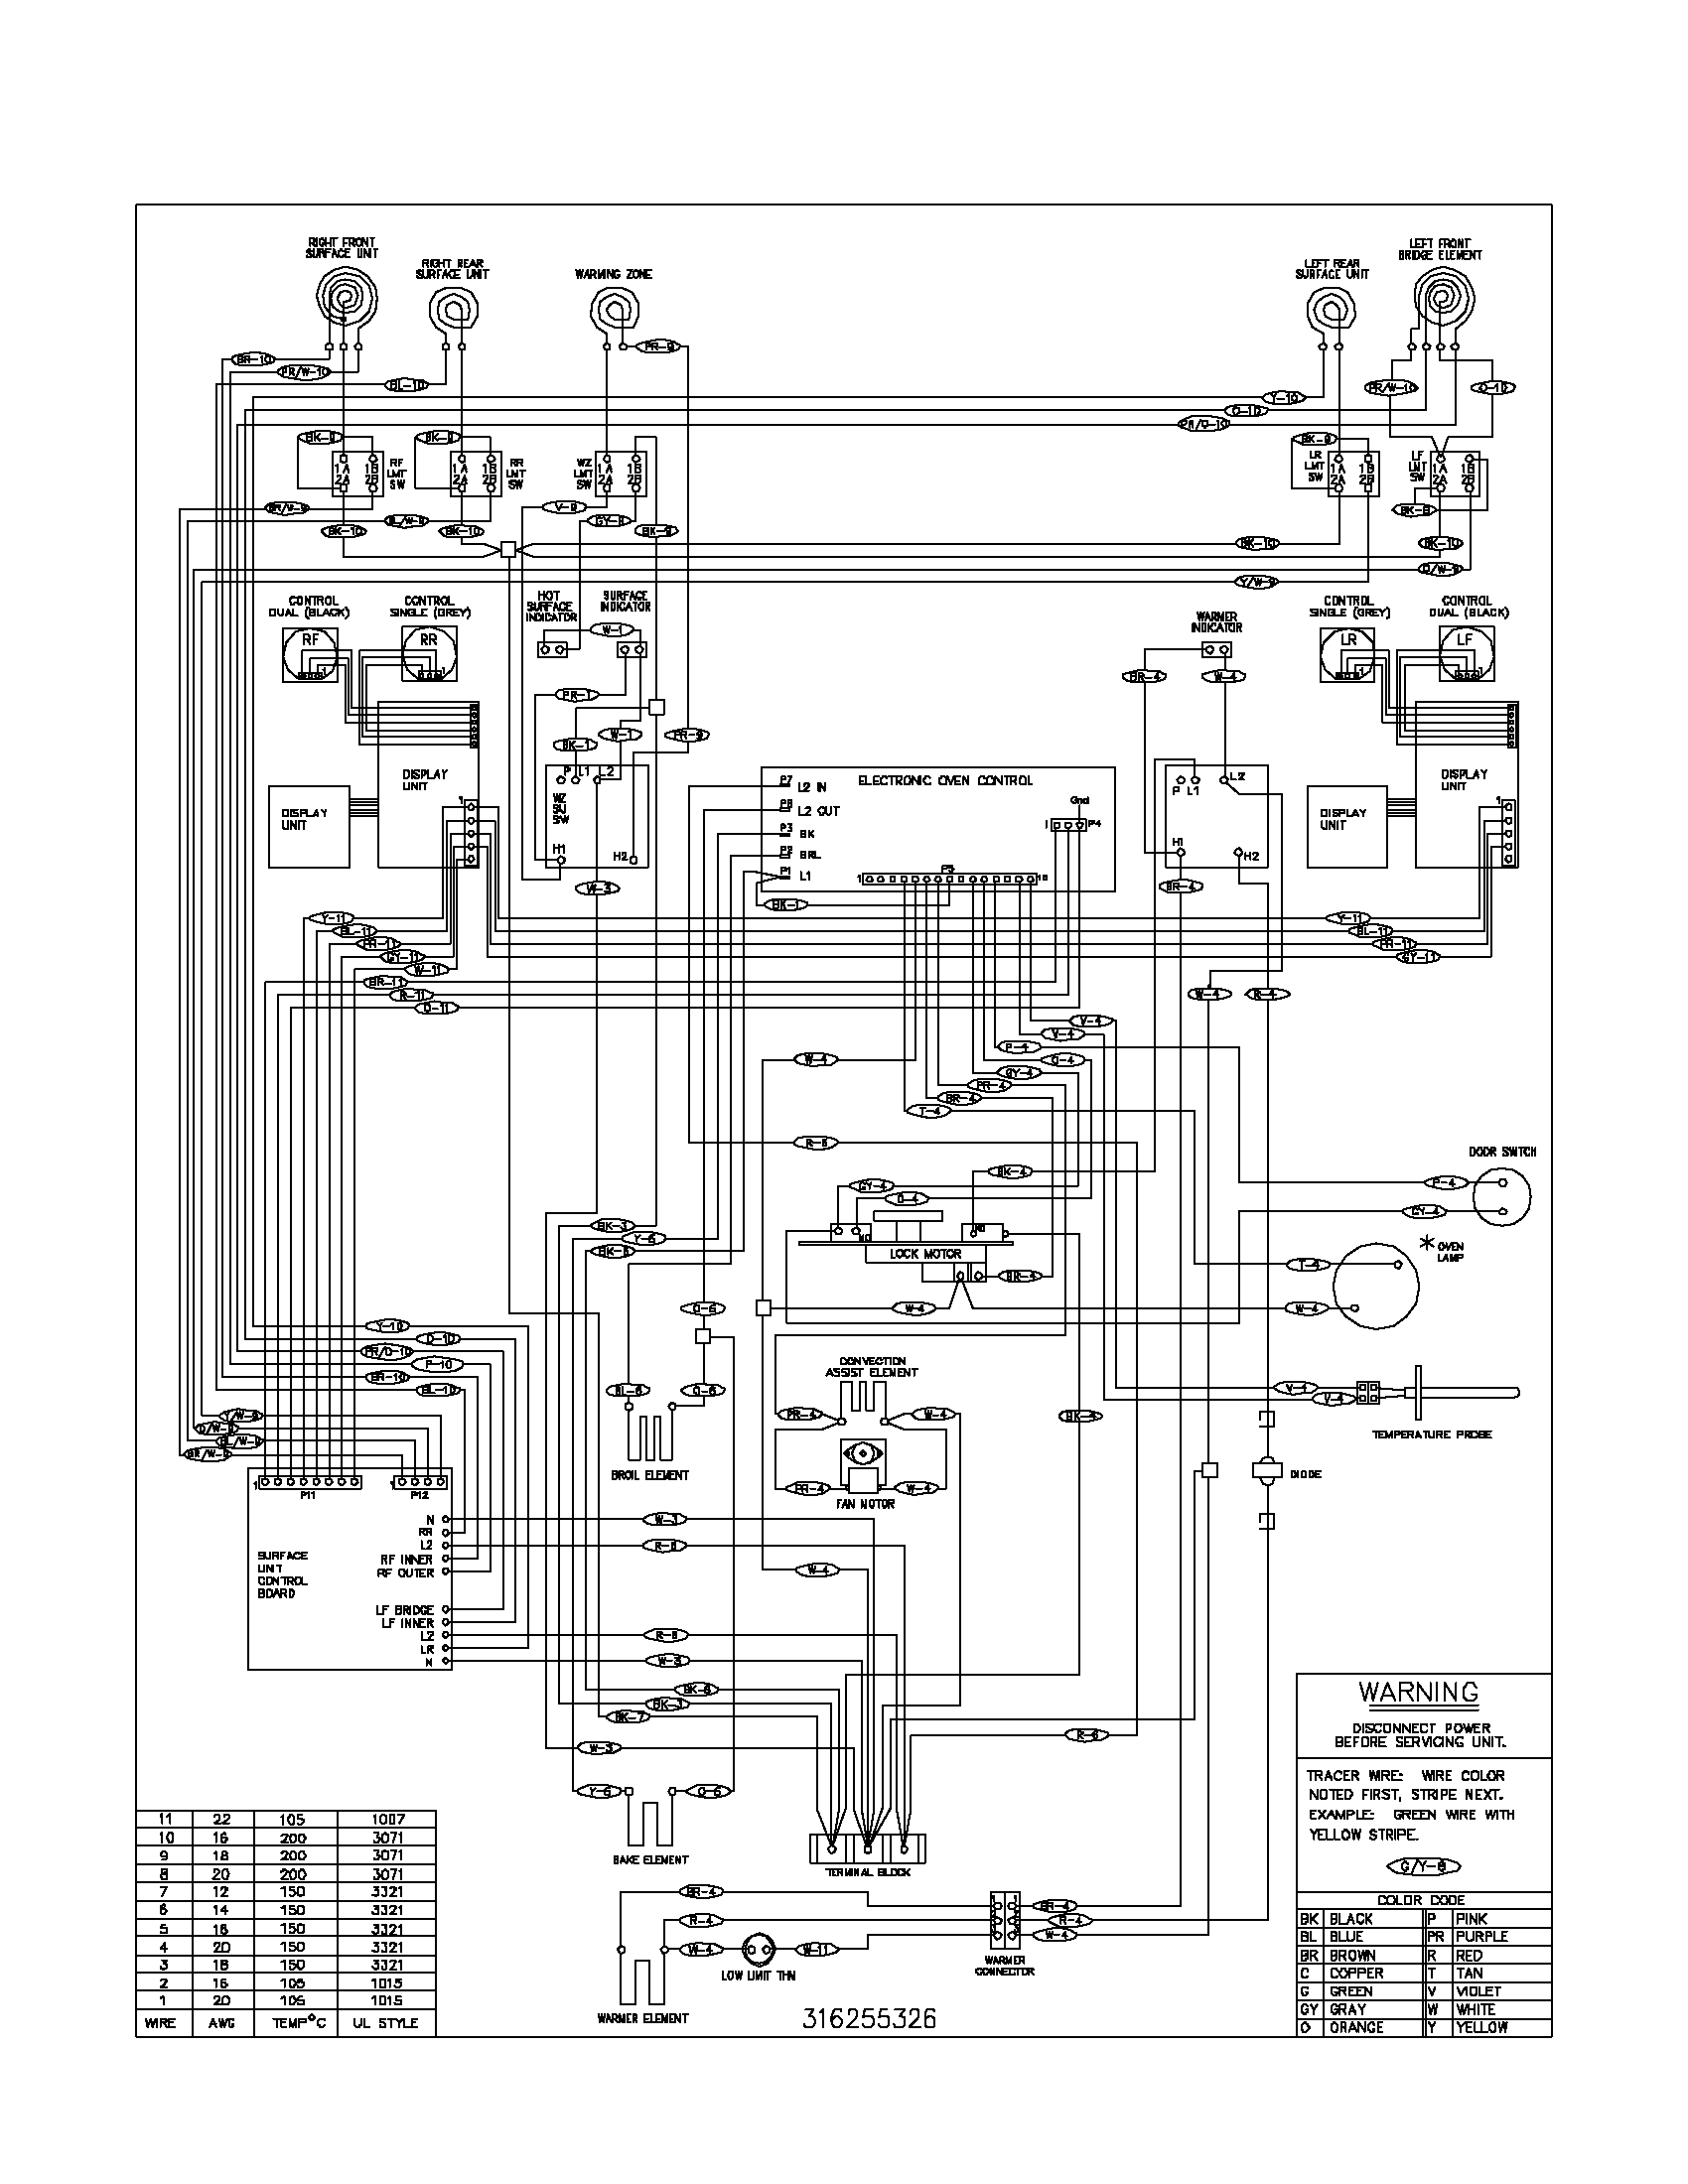 2013 nissan altima wiring schematic with To Orx Wiring Diagram on Wireharness Mazda1 as well Mazda Mpv Diagram Html together with Discussion C5433 ds550997 furthermore 1997 Chevrolet Malibu Wiring Diagram And Electrical System together with 401565 08 F150 Lariat Crew Cab Electrical Issues.